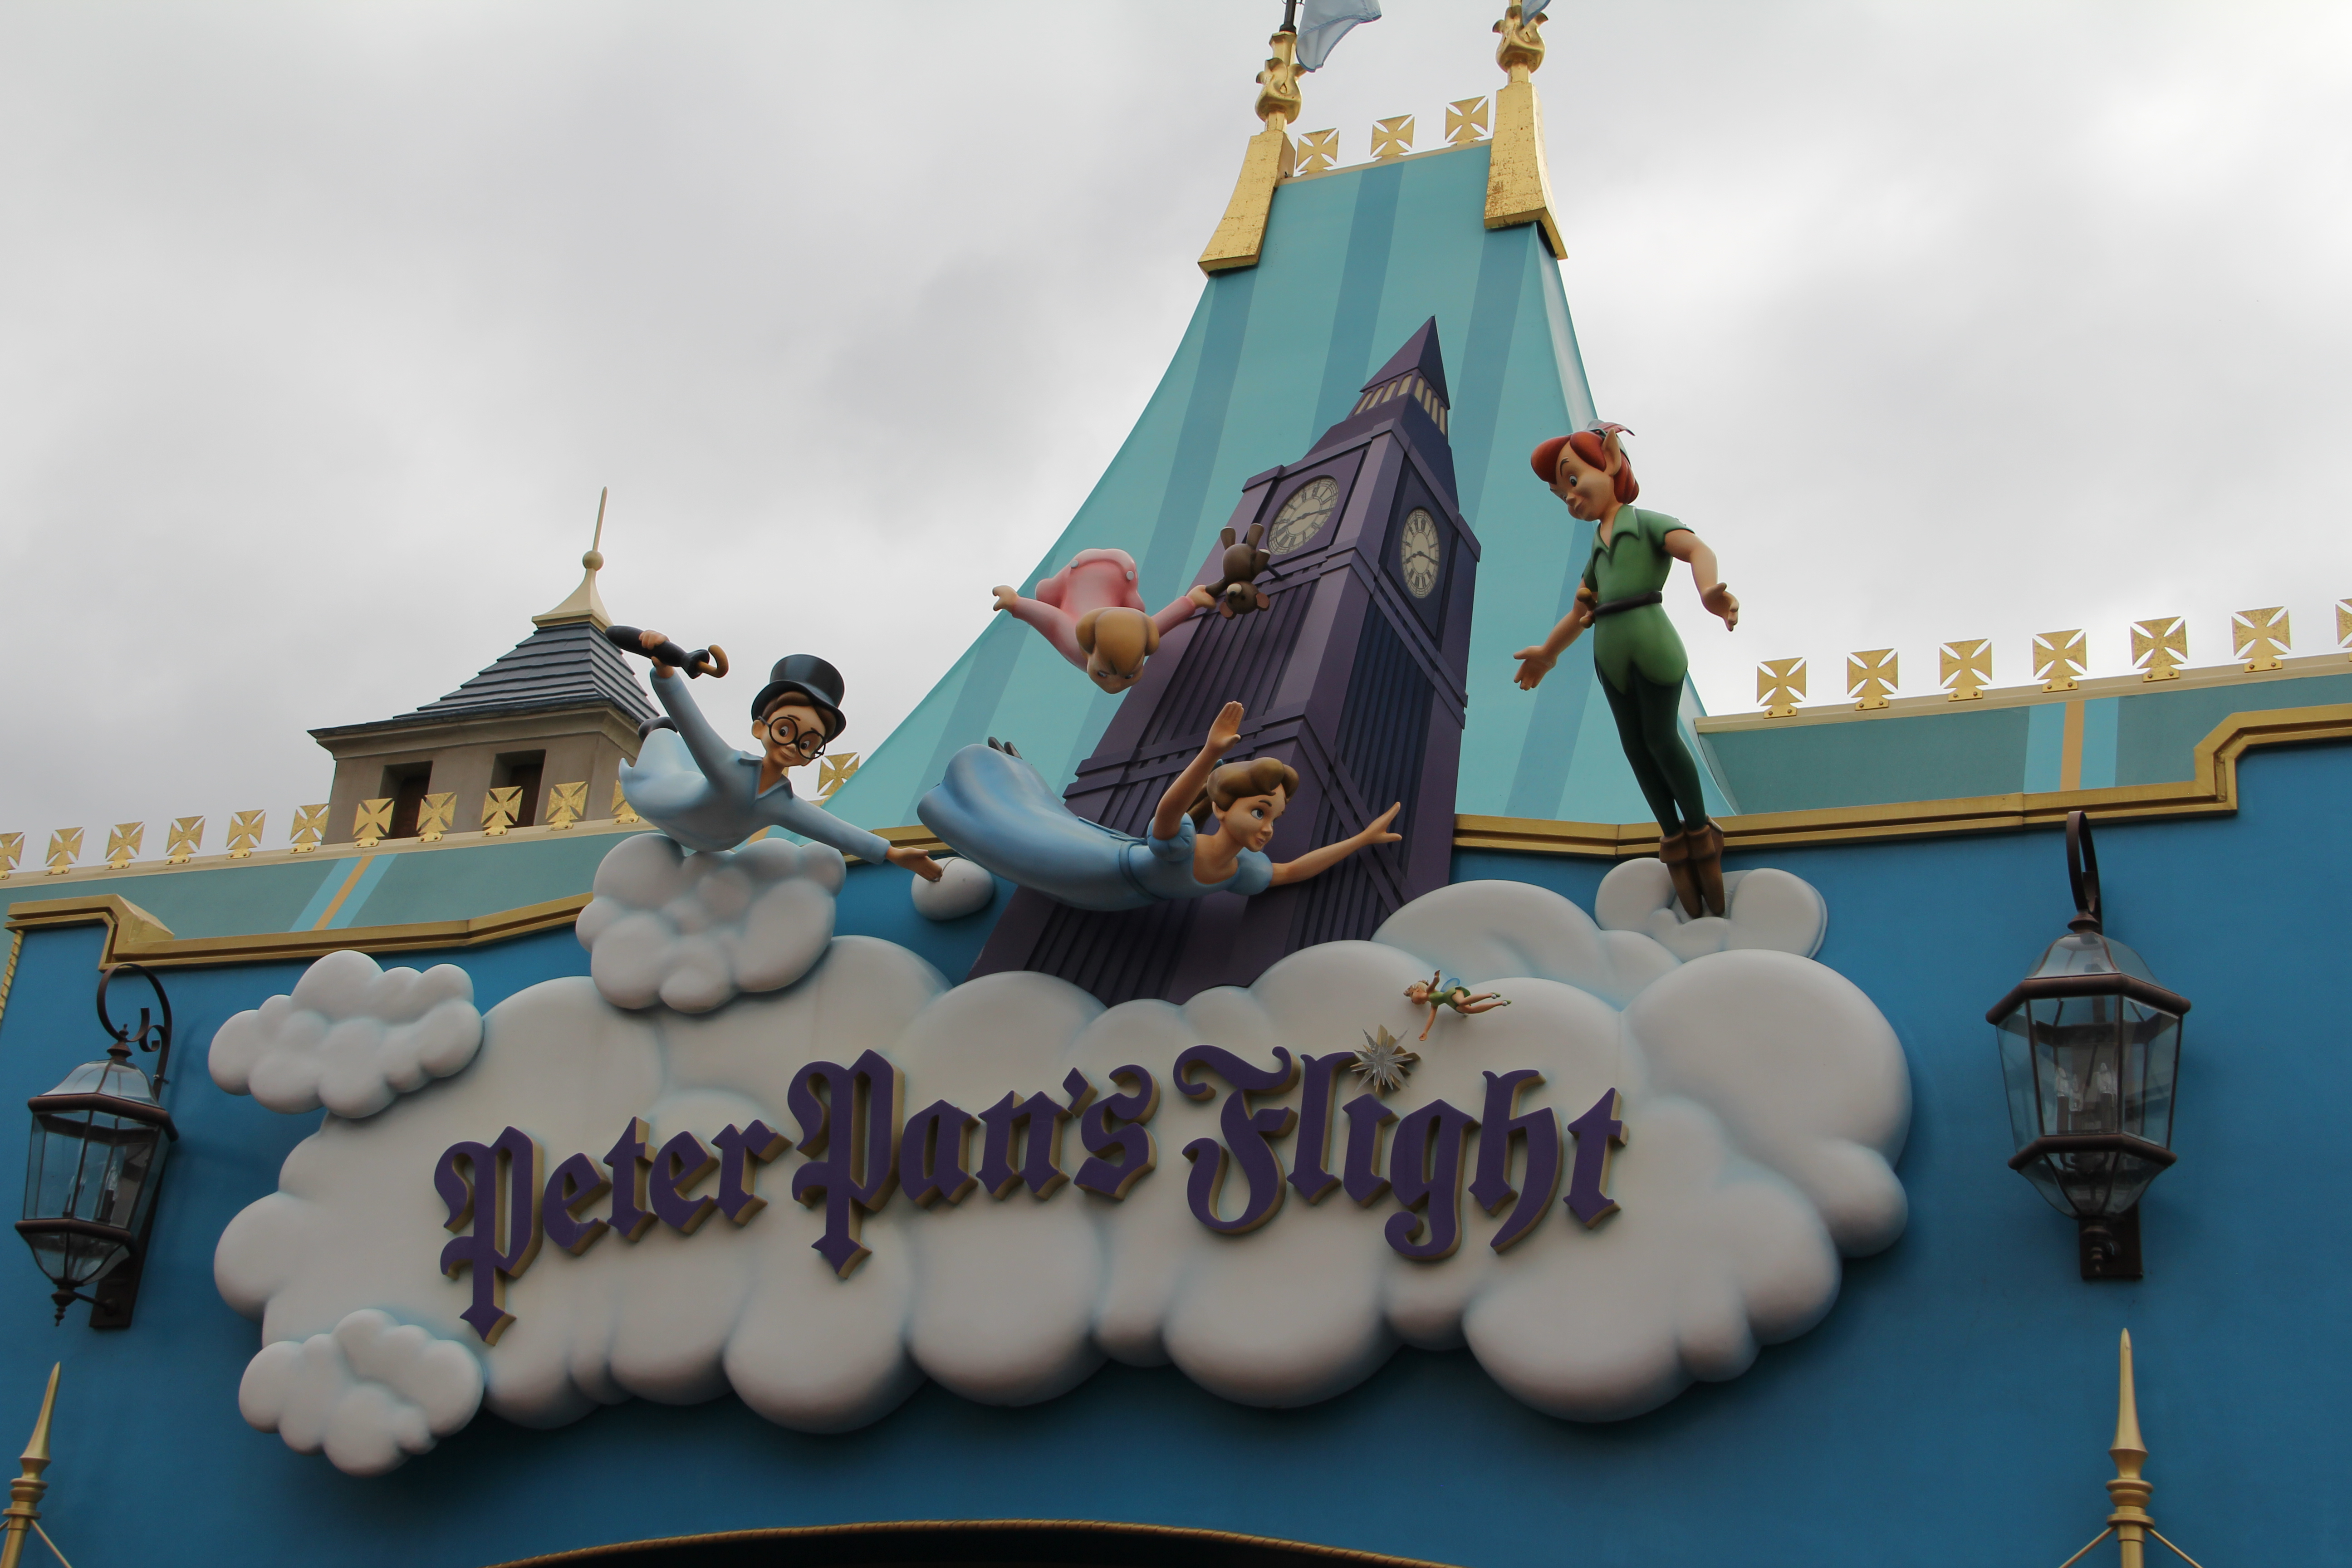 Peter Pan Flight Sign